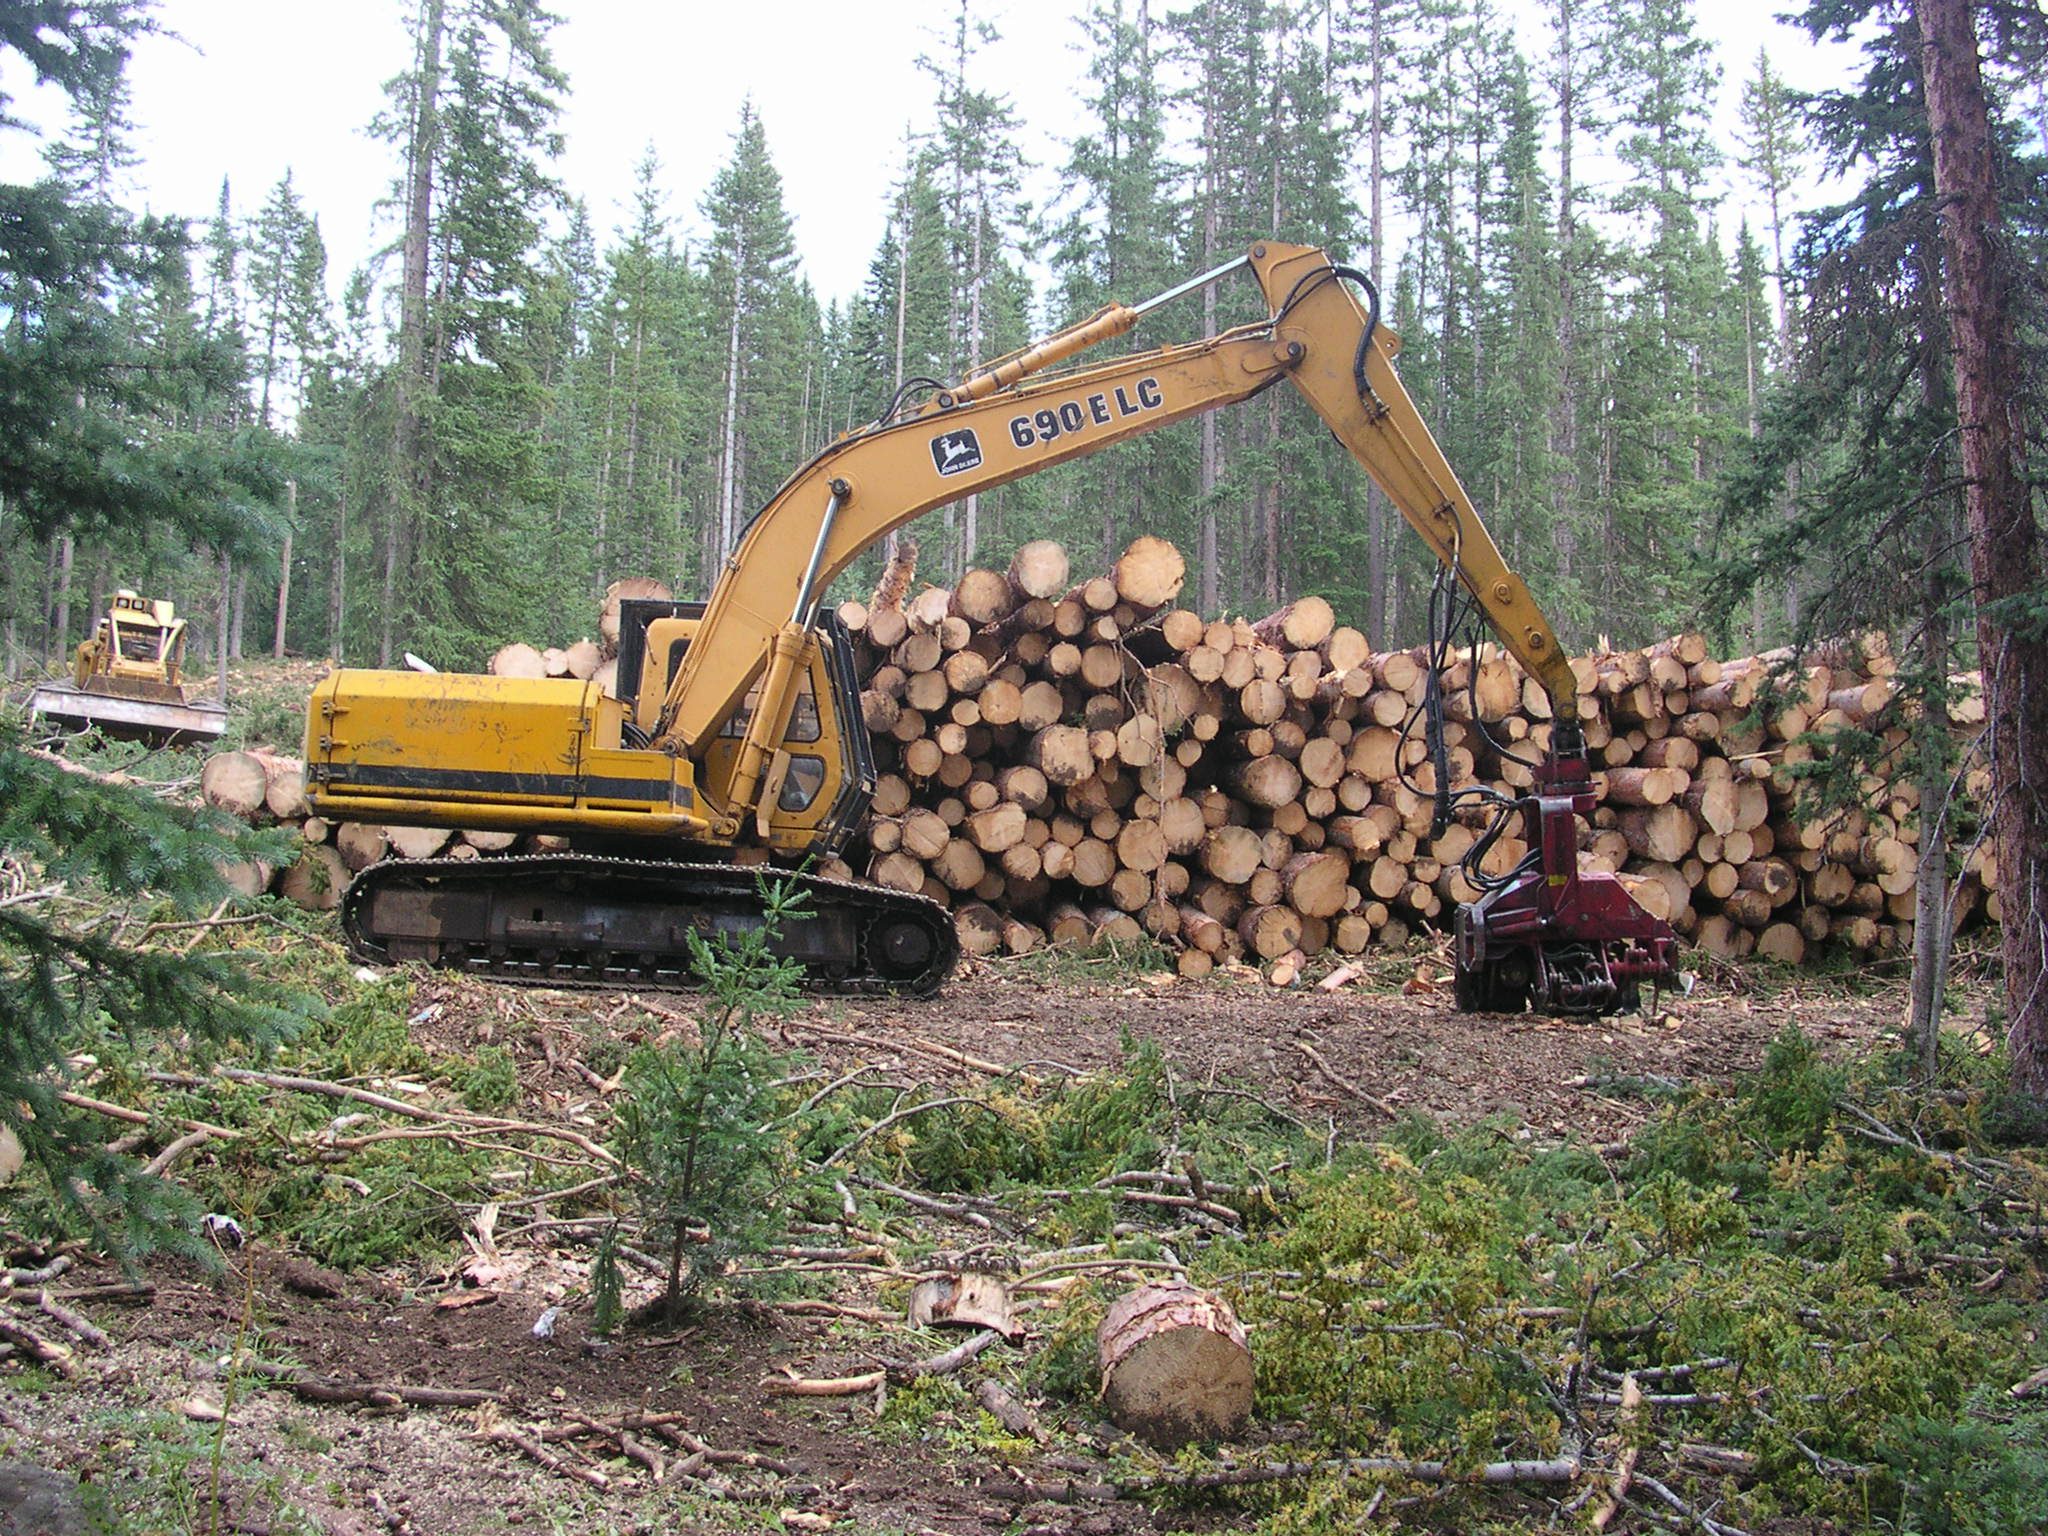 A picture of a front loader machine stacking logs on top of each other.